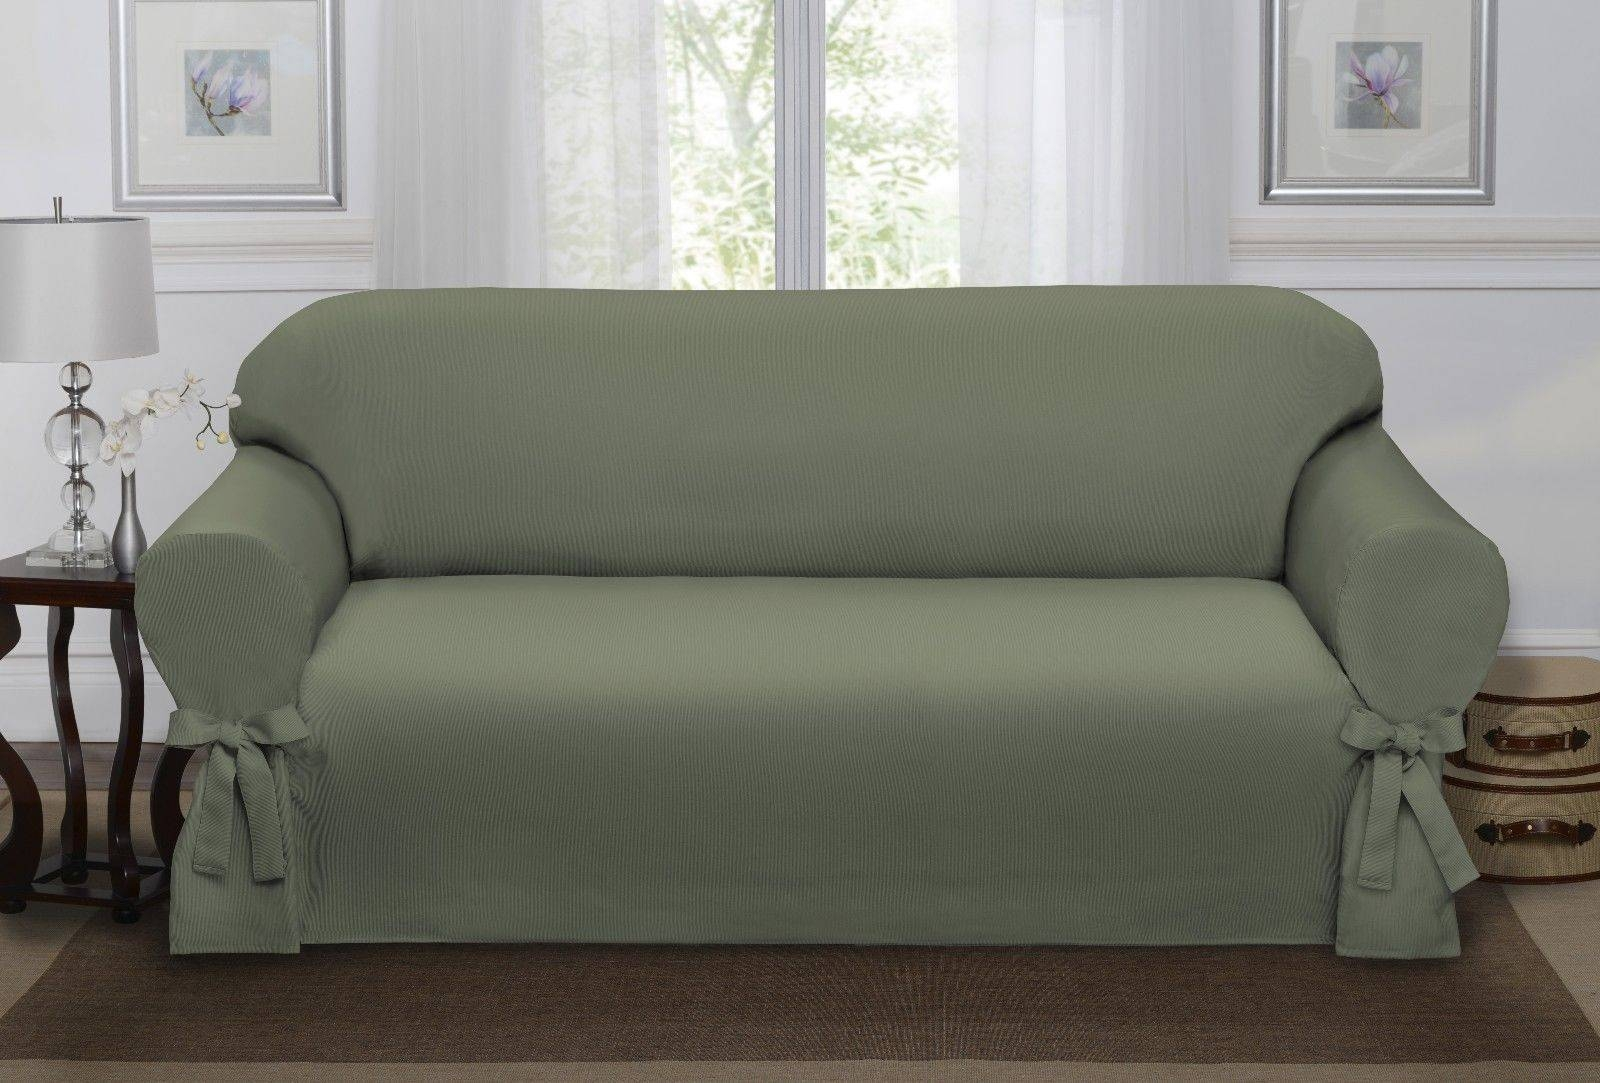 Sofa Covers Ebay With Design Photo 34546 | Kengire Within Sofa Settee Covers (View 27 of 30)